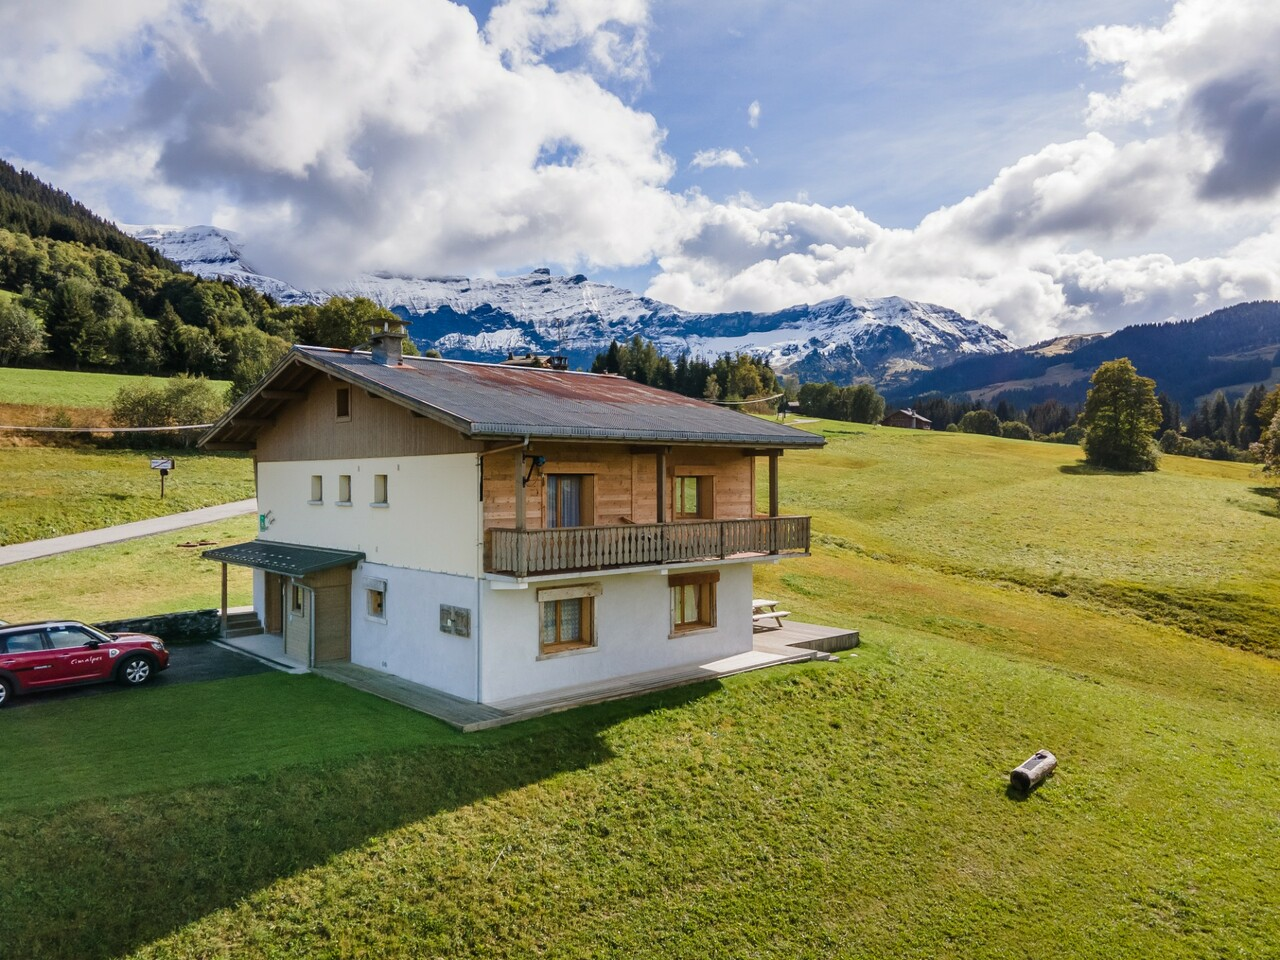 CHALET MONT D'ARBOIS Accommodation in Megeve